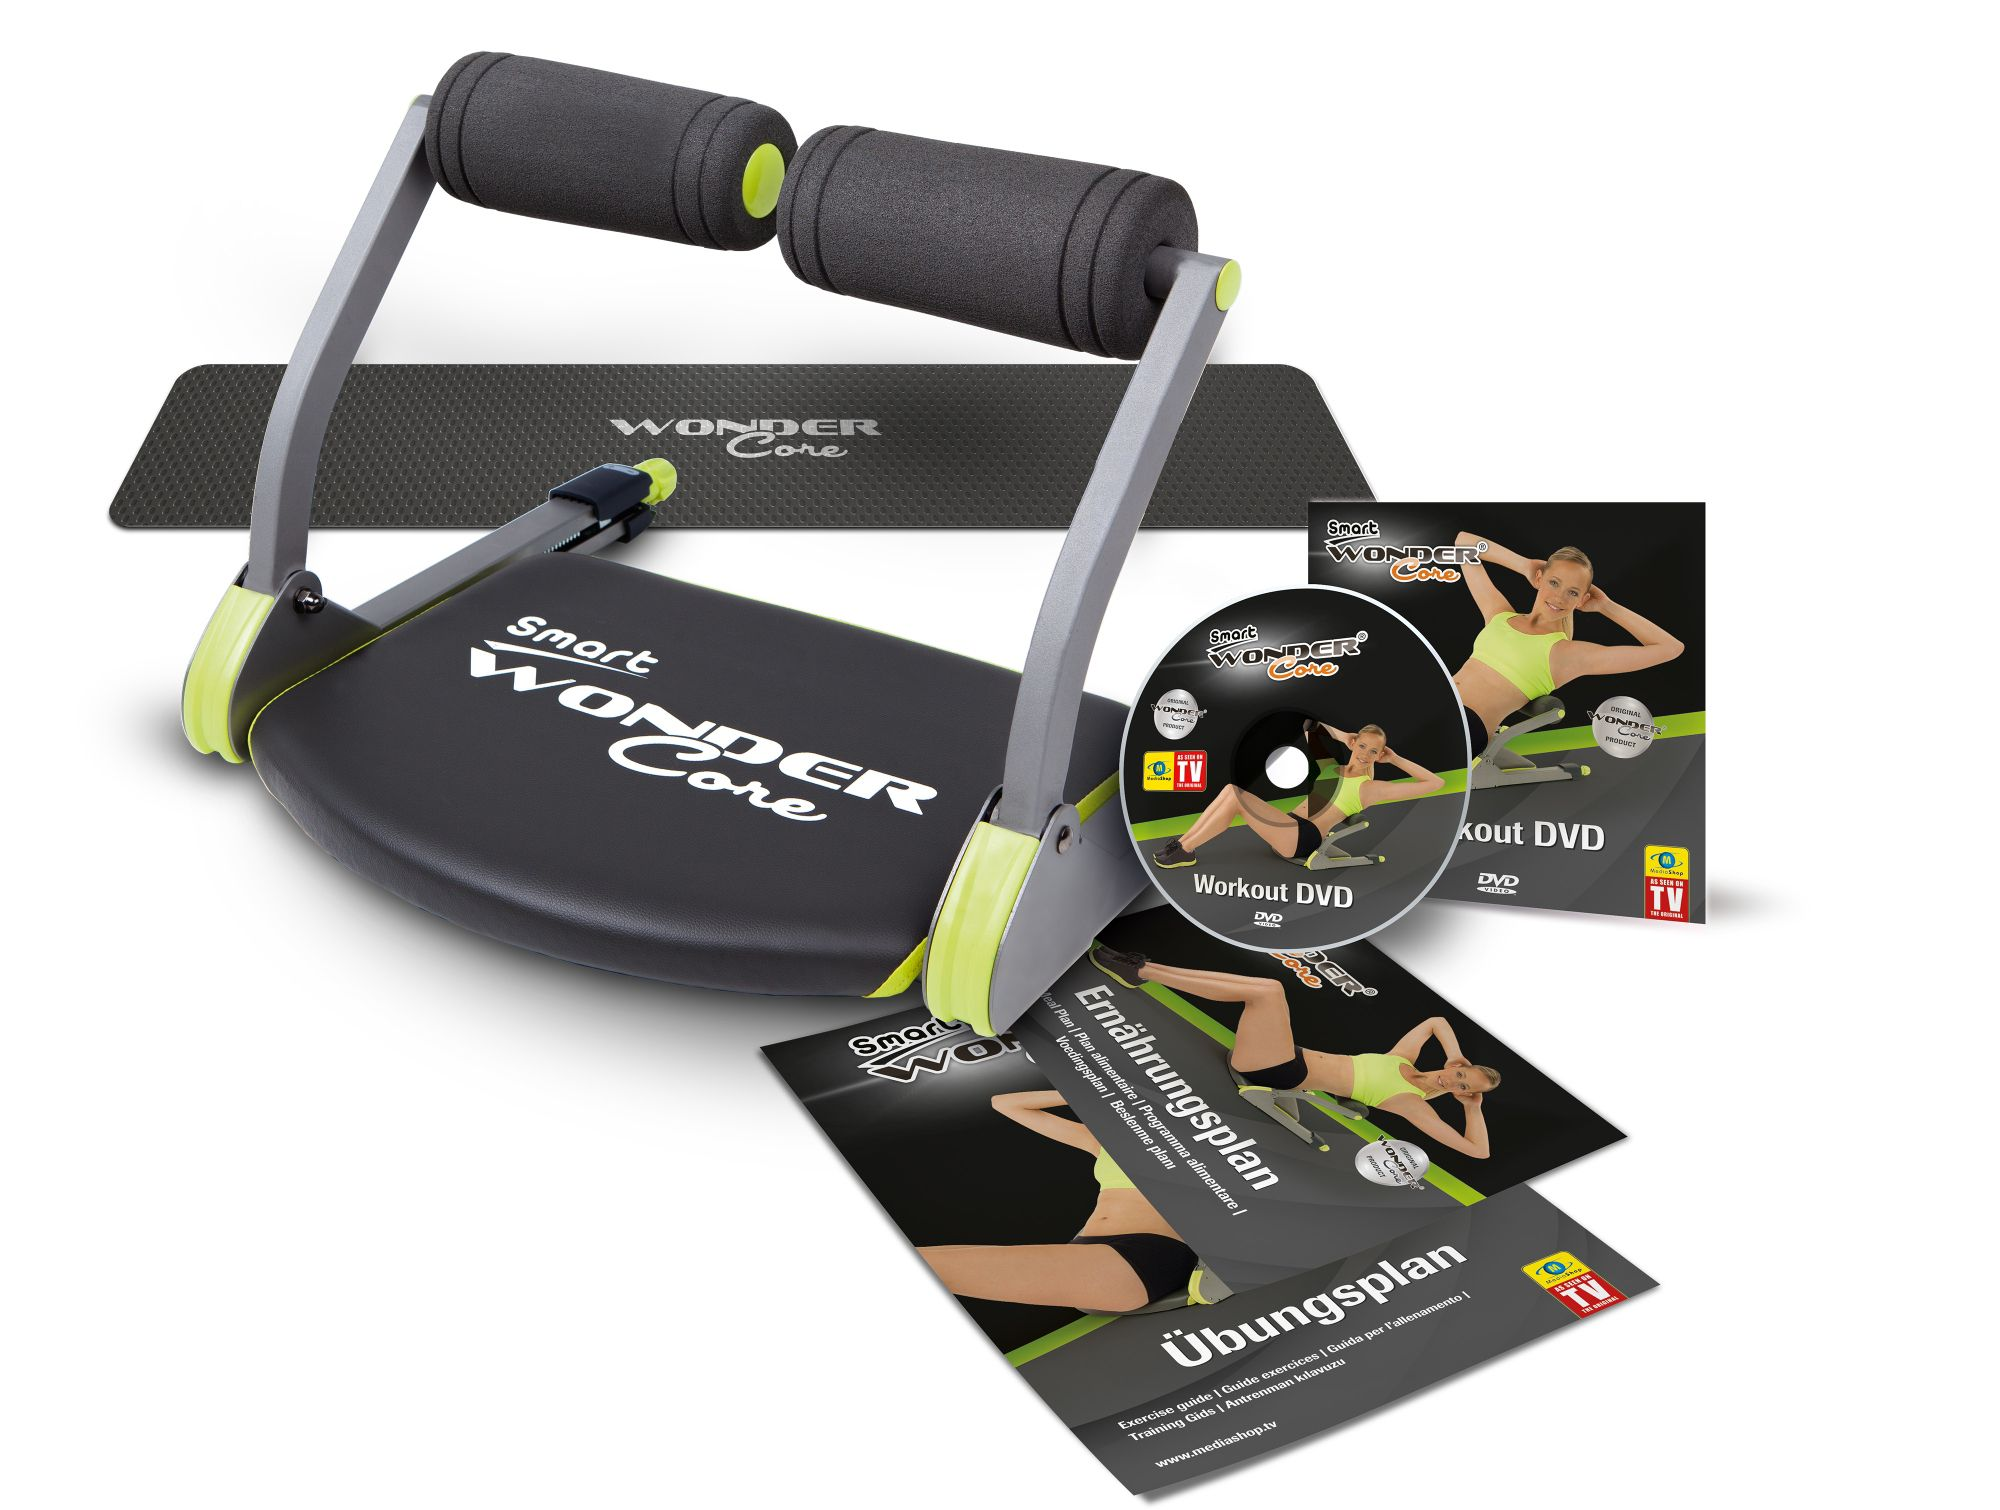 WONDERCORE SMART 6 in 1 Fitnessgerät, »Wonder Core Smart«